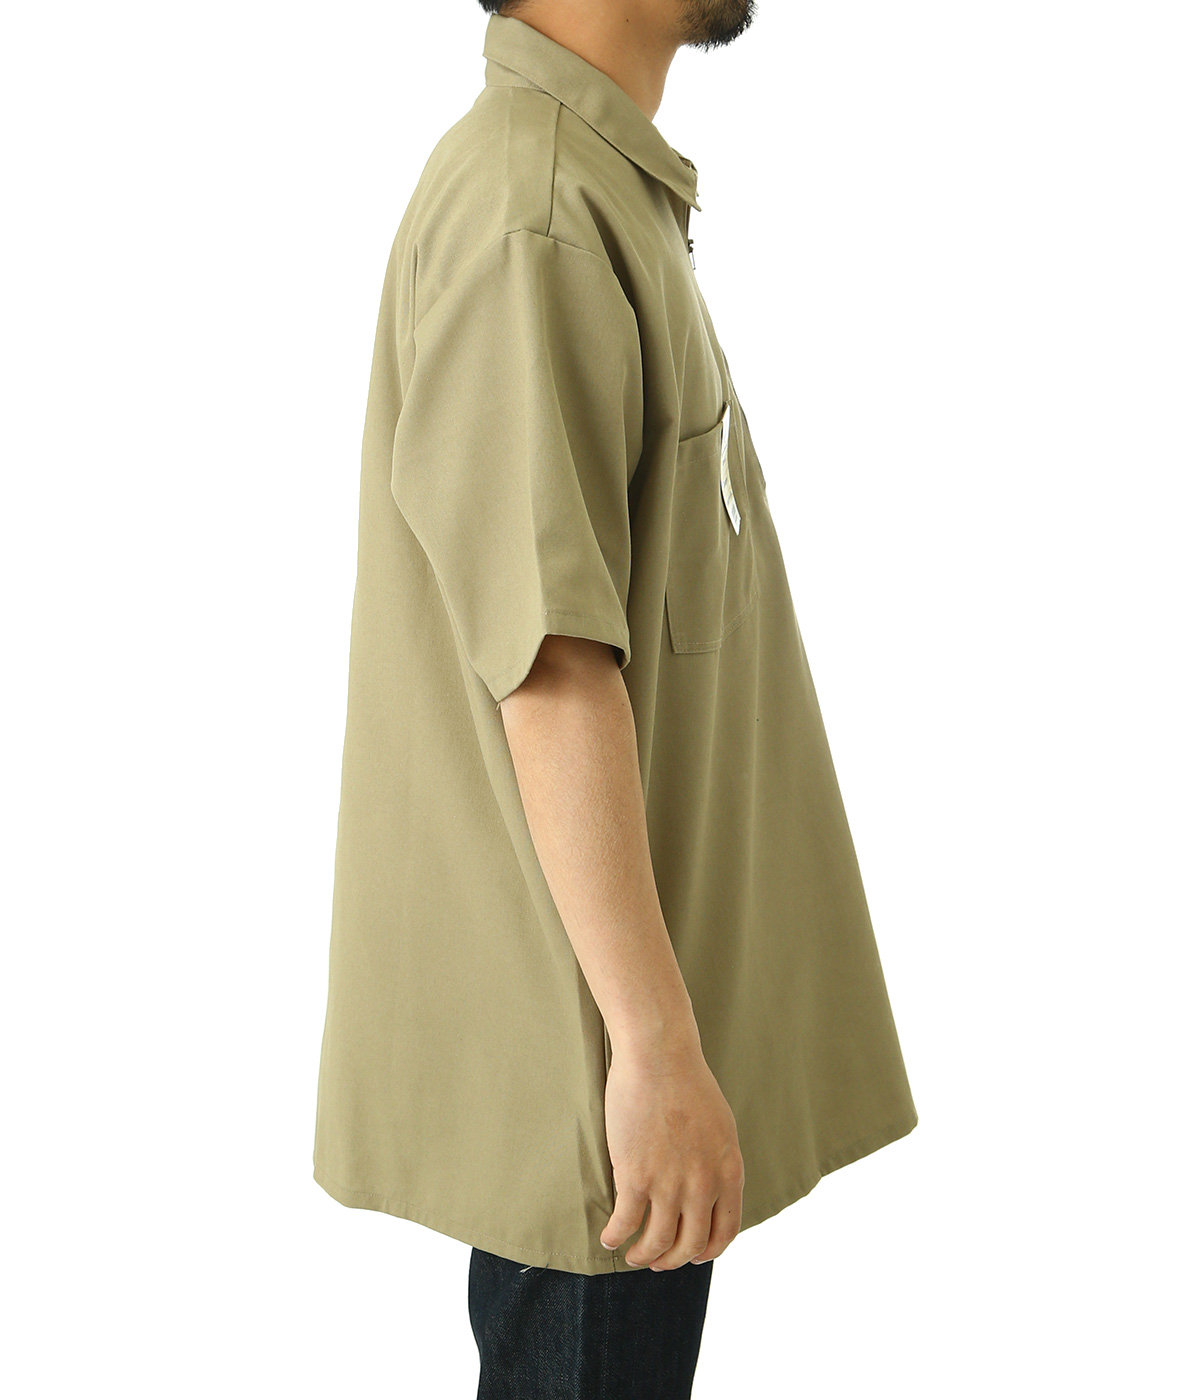 SOLID HALF ZIP S/S SHIRTS